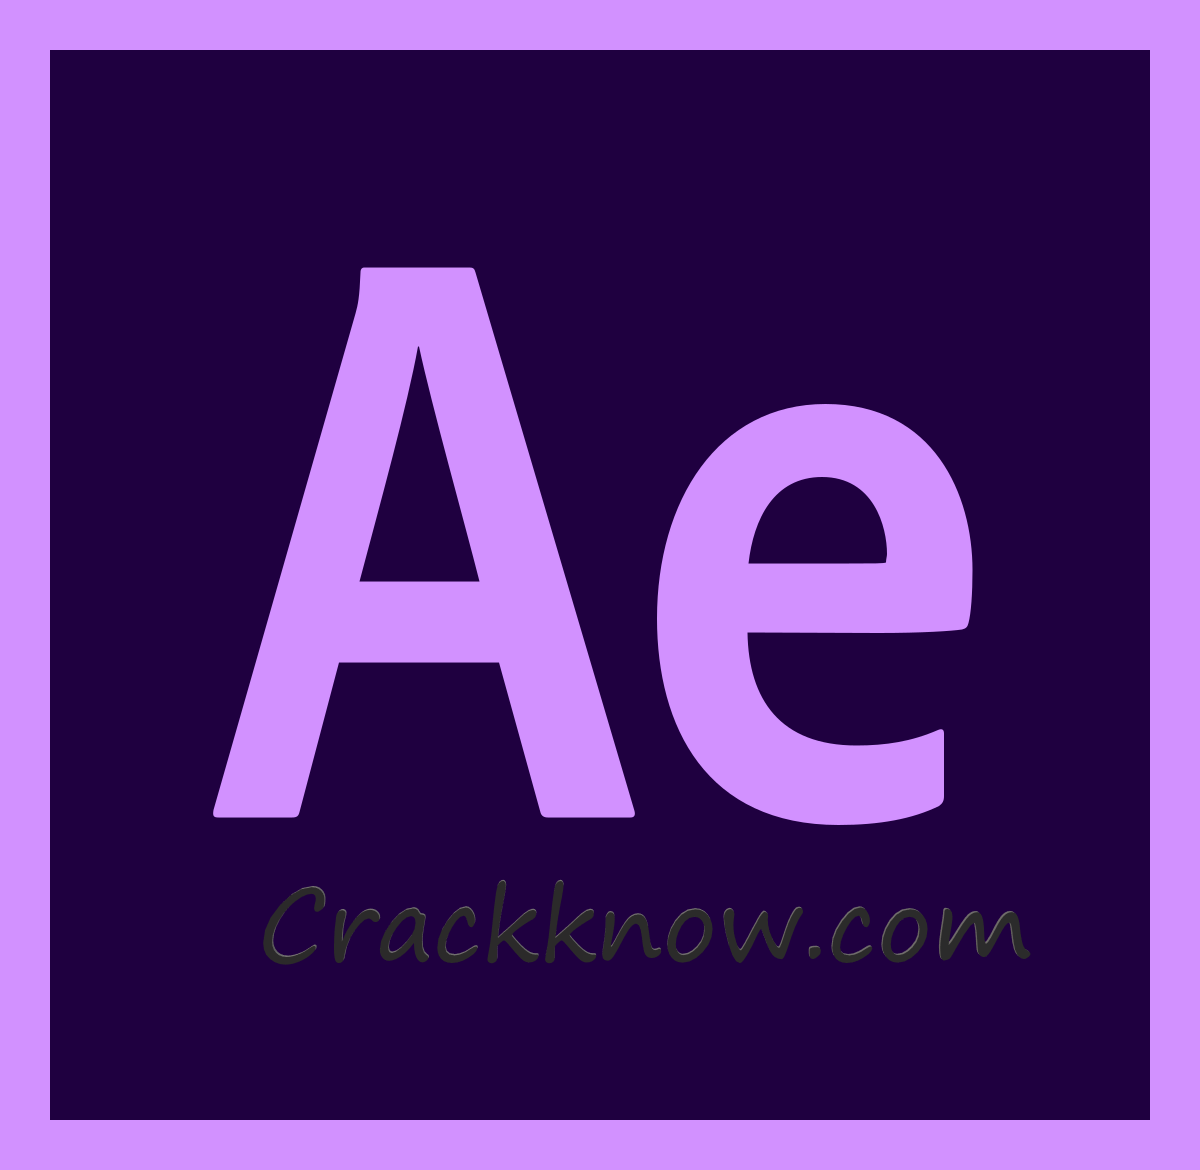 Adobe After Effects 2020 17.1.0.72 Crack (Pre-Activated Version) Download